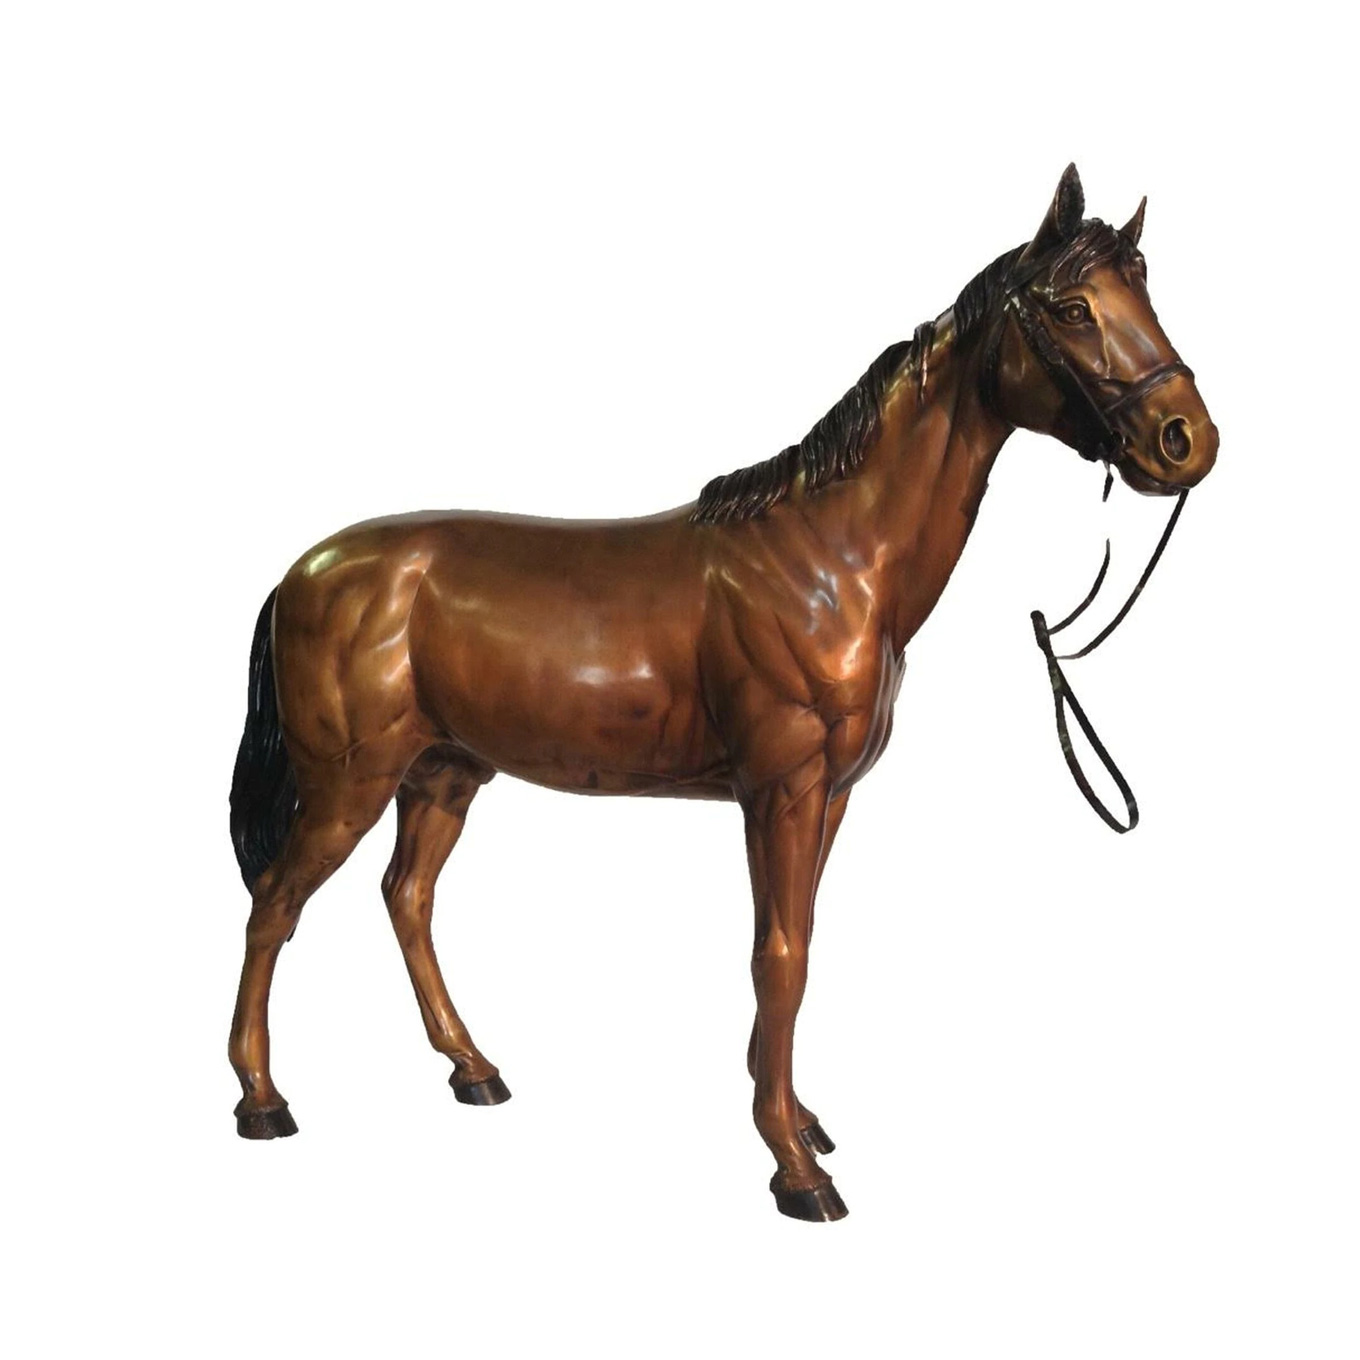 Large Life Size Art Decoration Outdoor Horse sculpture of Brown Horse